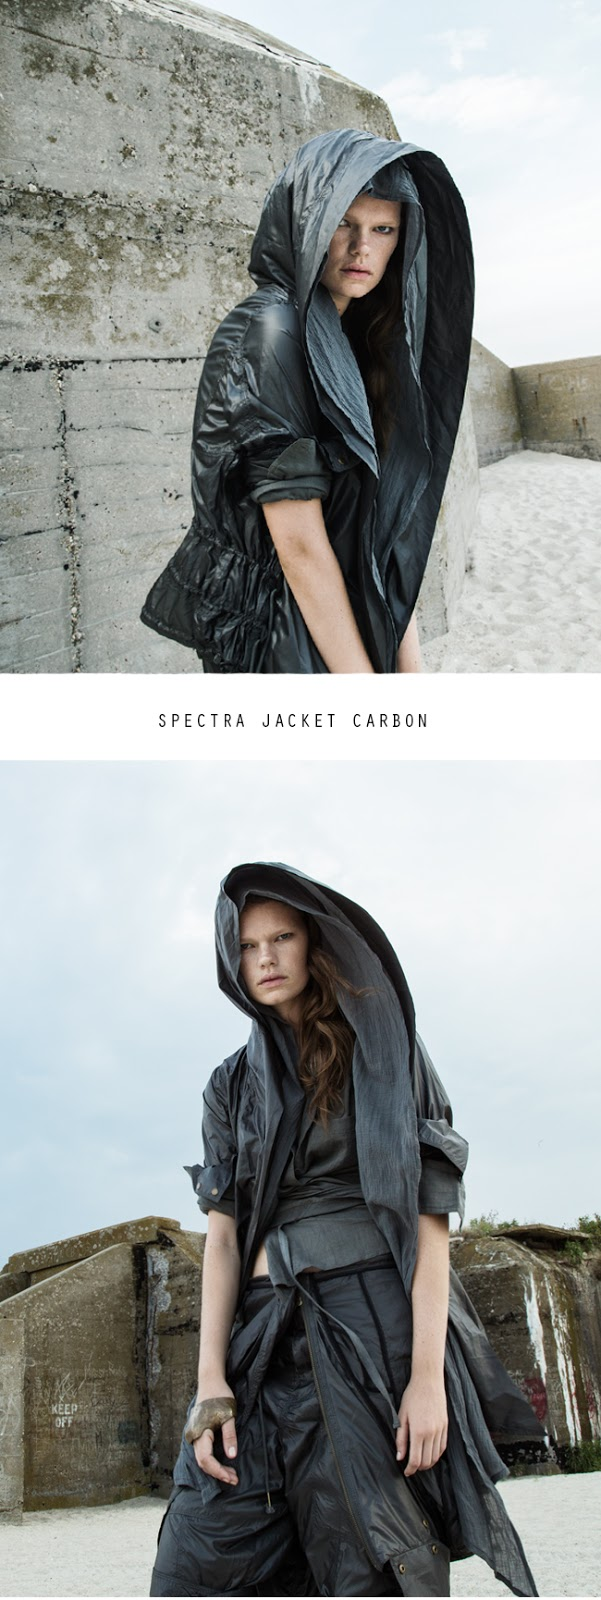 Spectra Jacket Carbon by Nicholas K